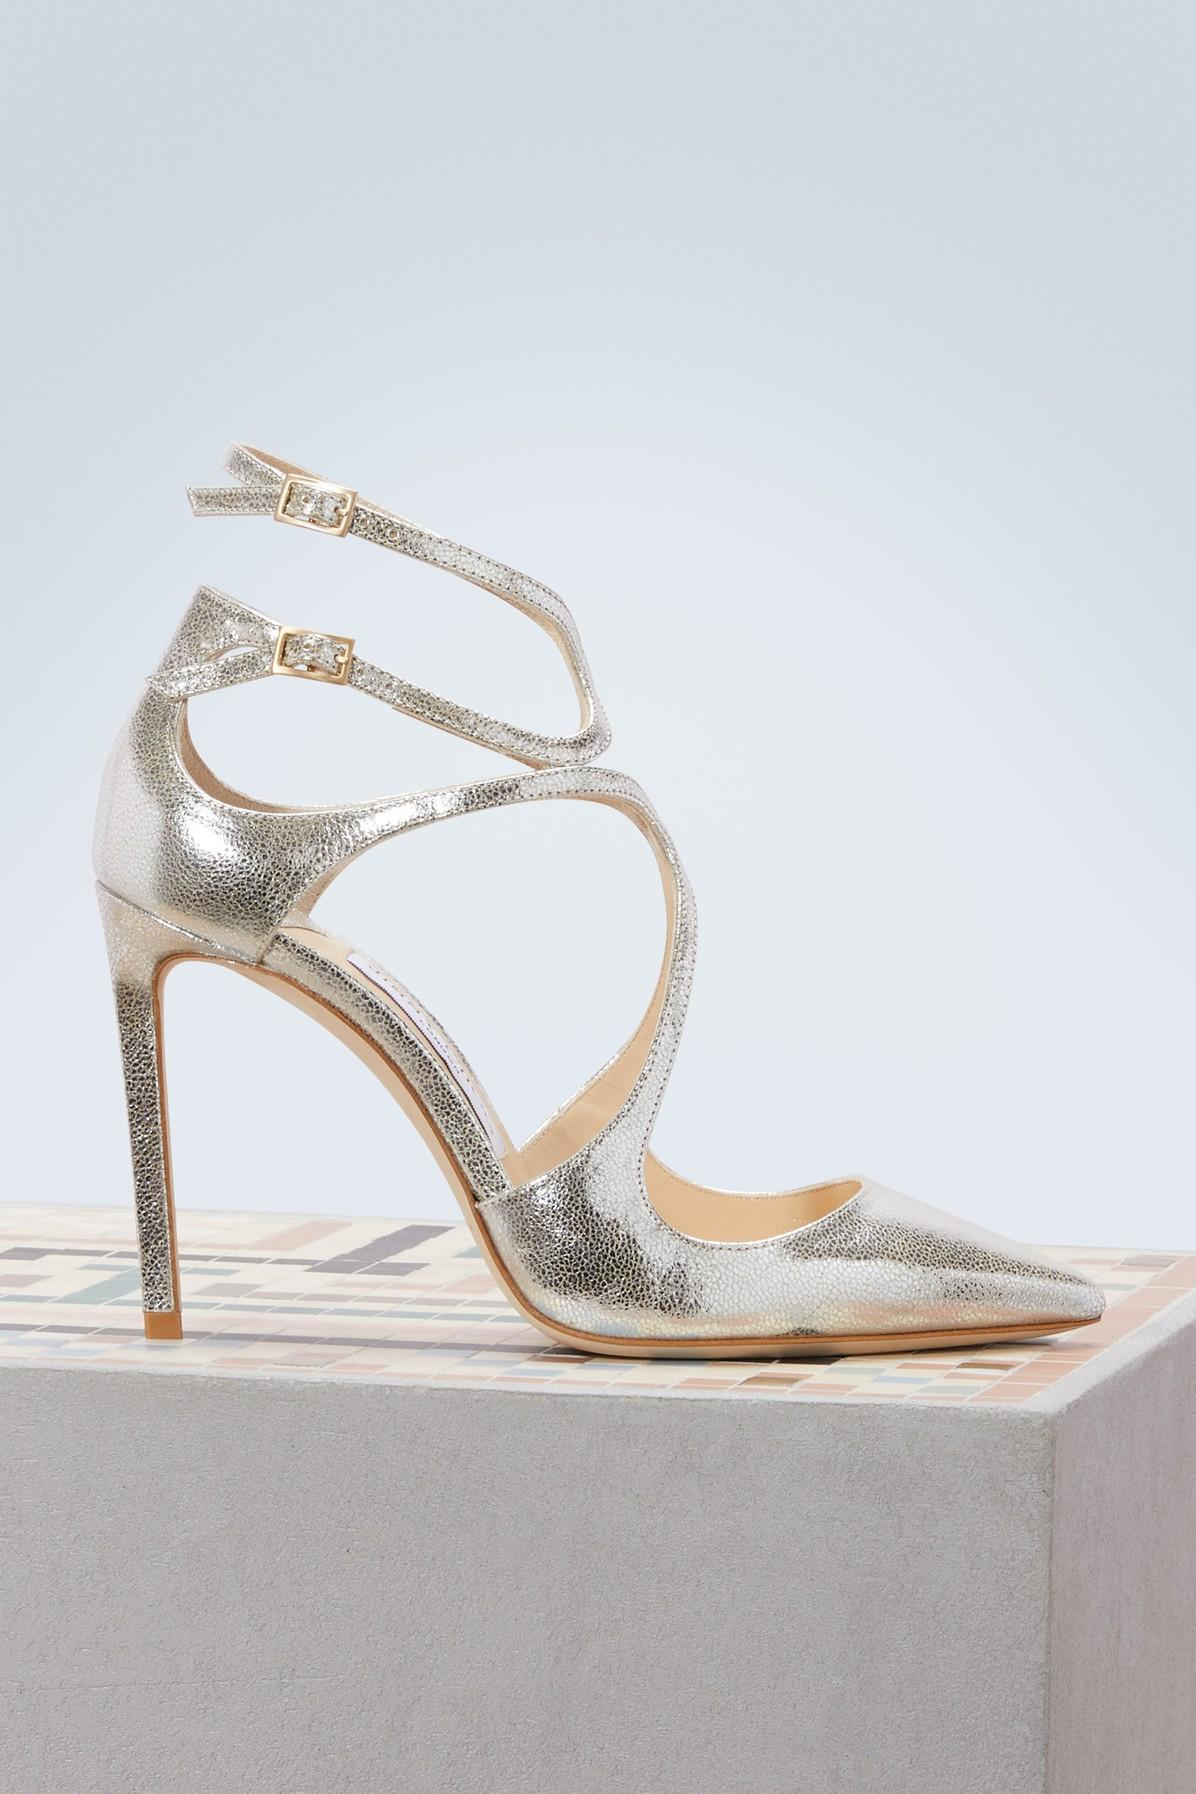 f70a0a3e0a Jimmy Choo Lancer 100 Metallic Cracked-Leather Pumps In Silver ...